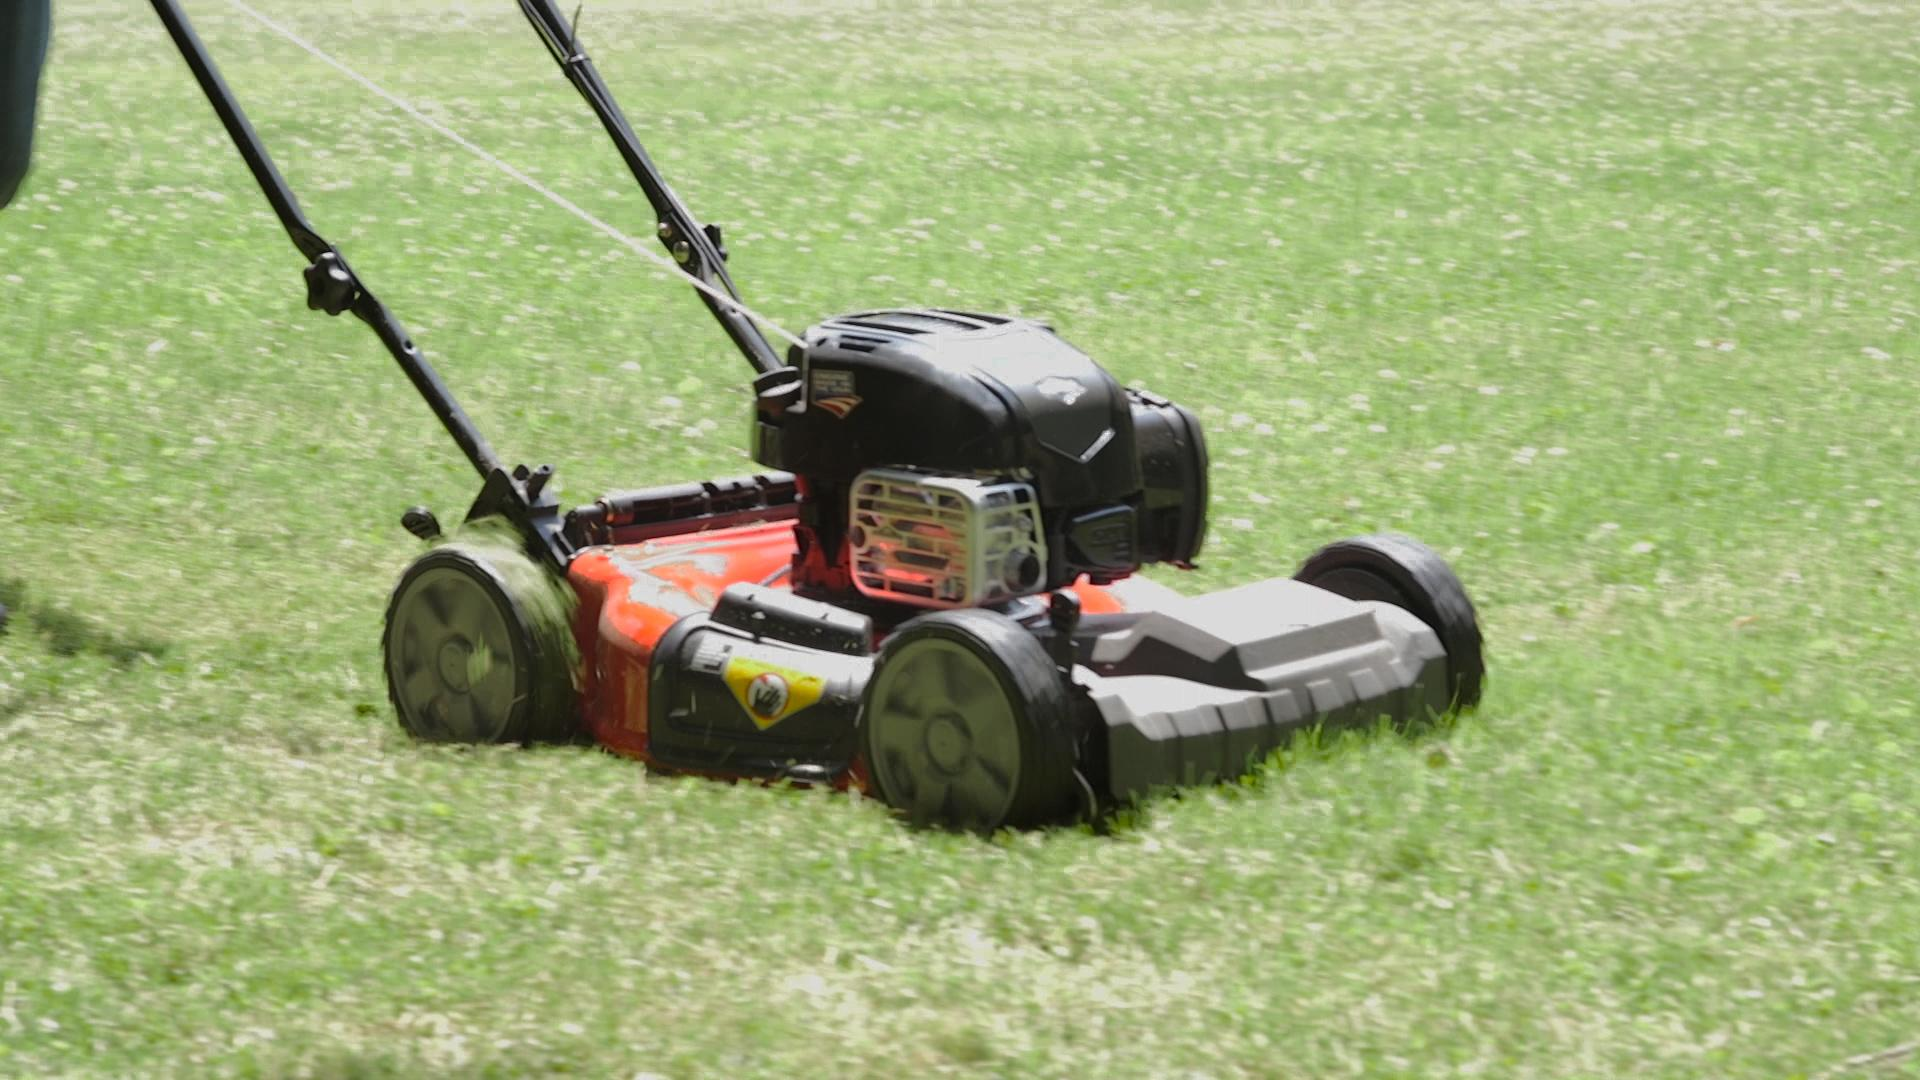 How To Cut Grass In Hot Weather And Keep It Green